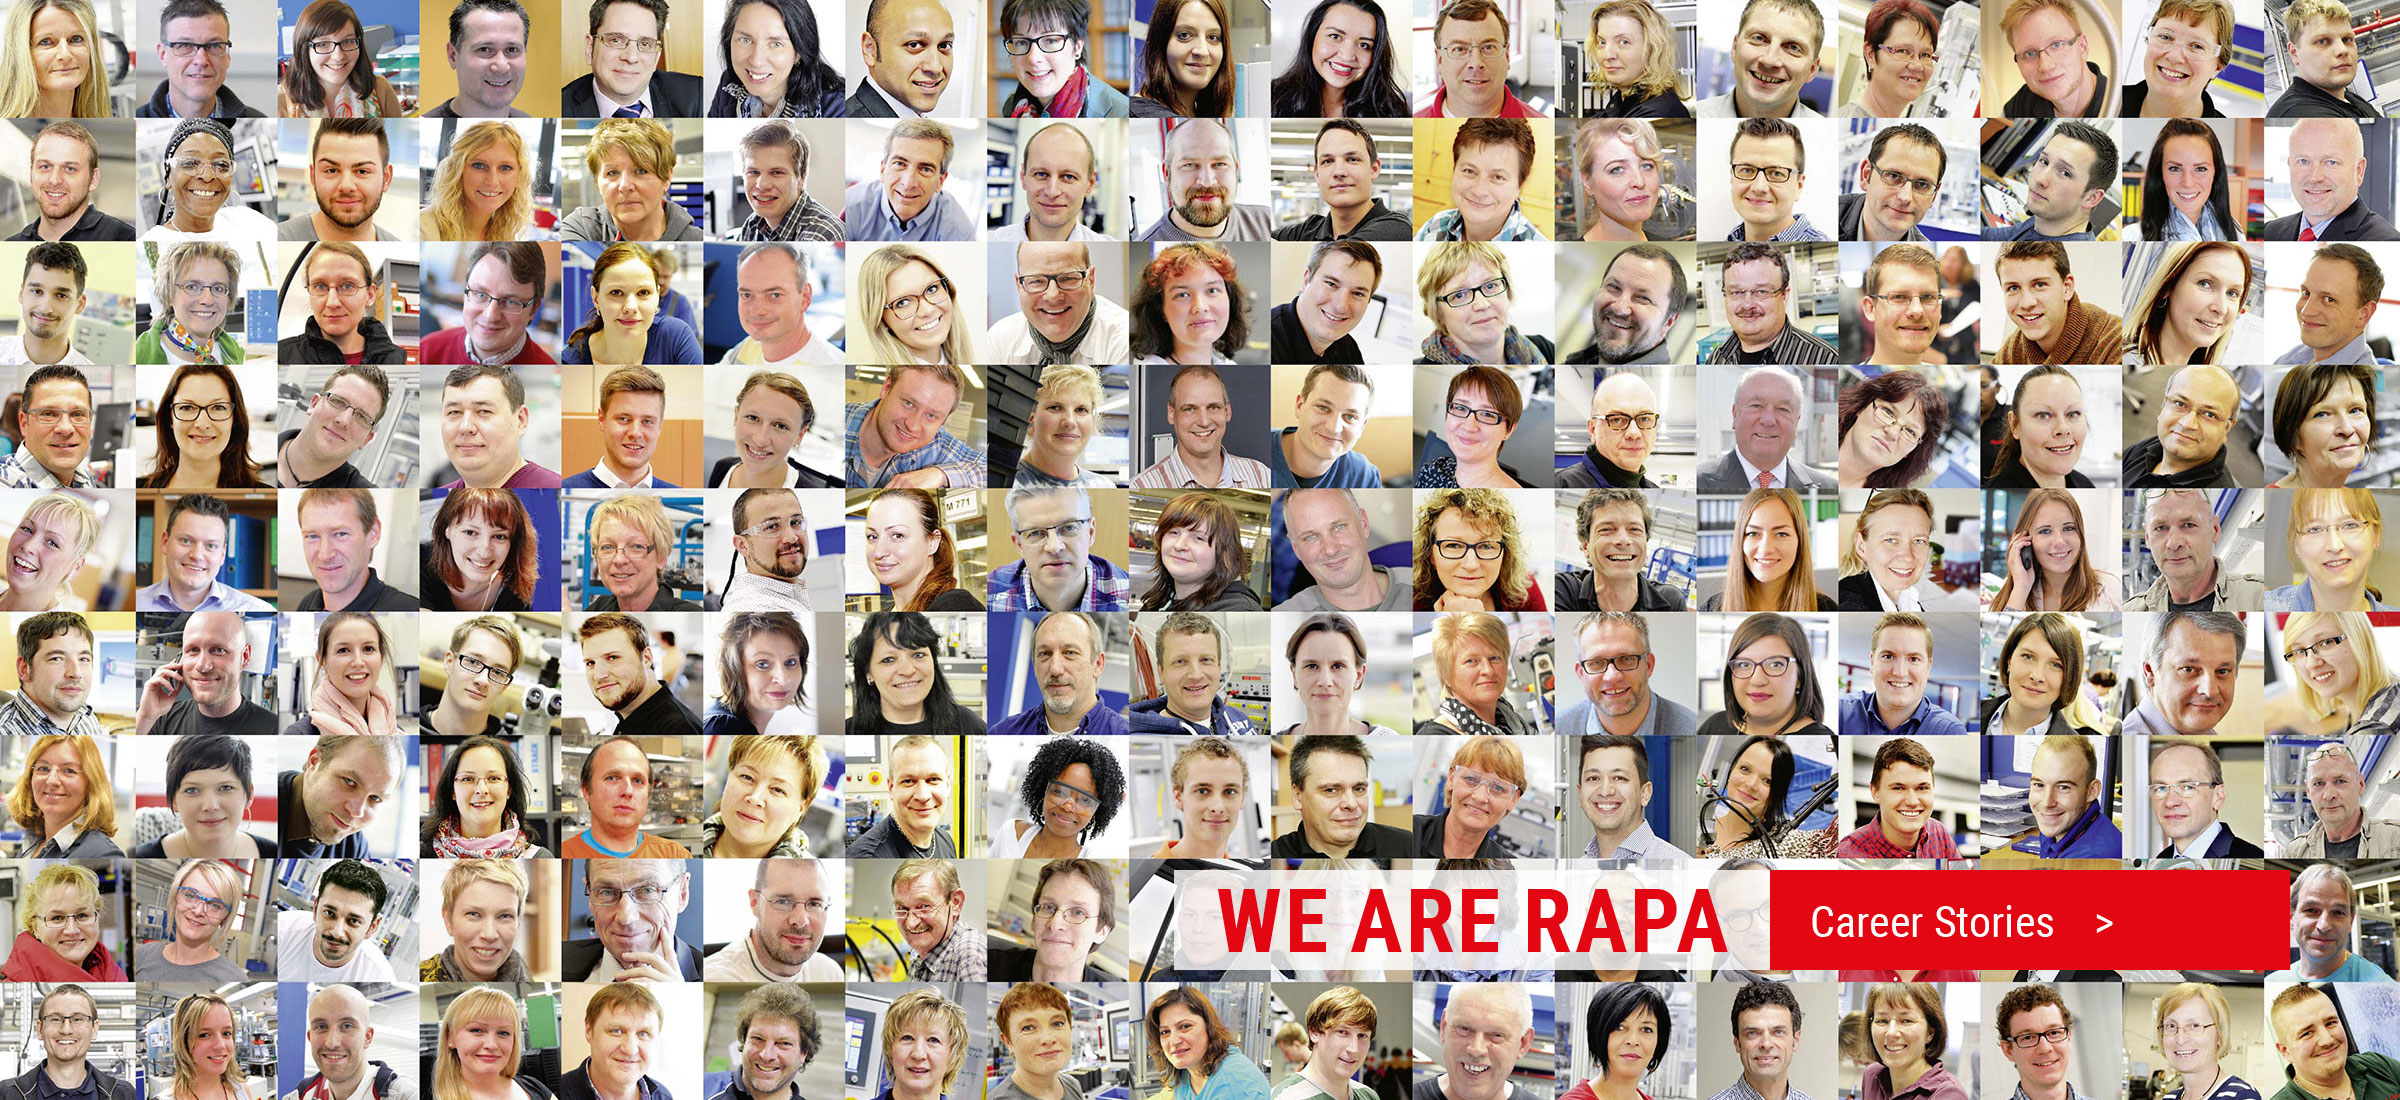 http://www.rapa.com/en/we-are-rapa/career-stories/